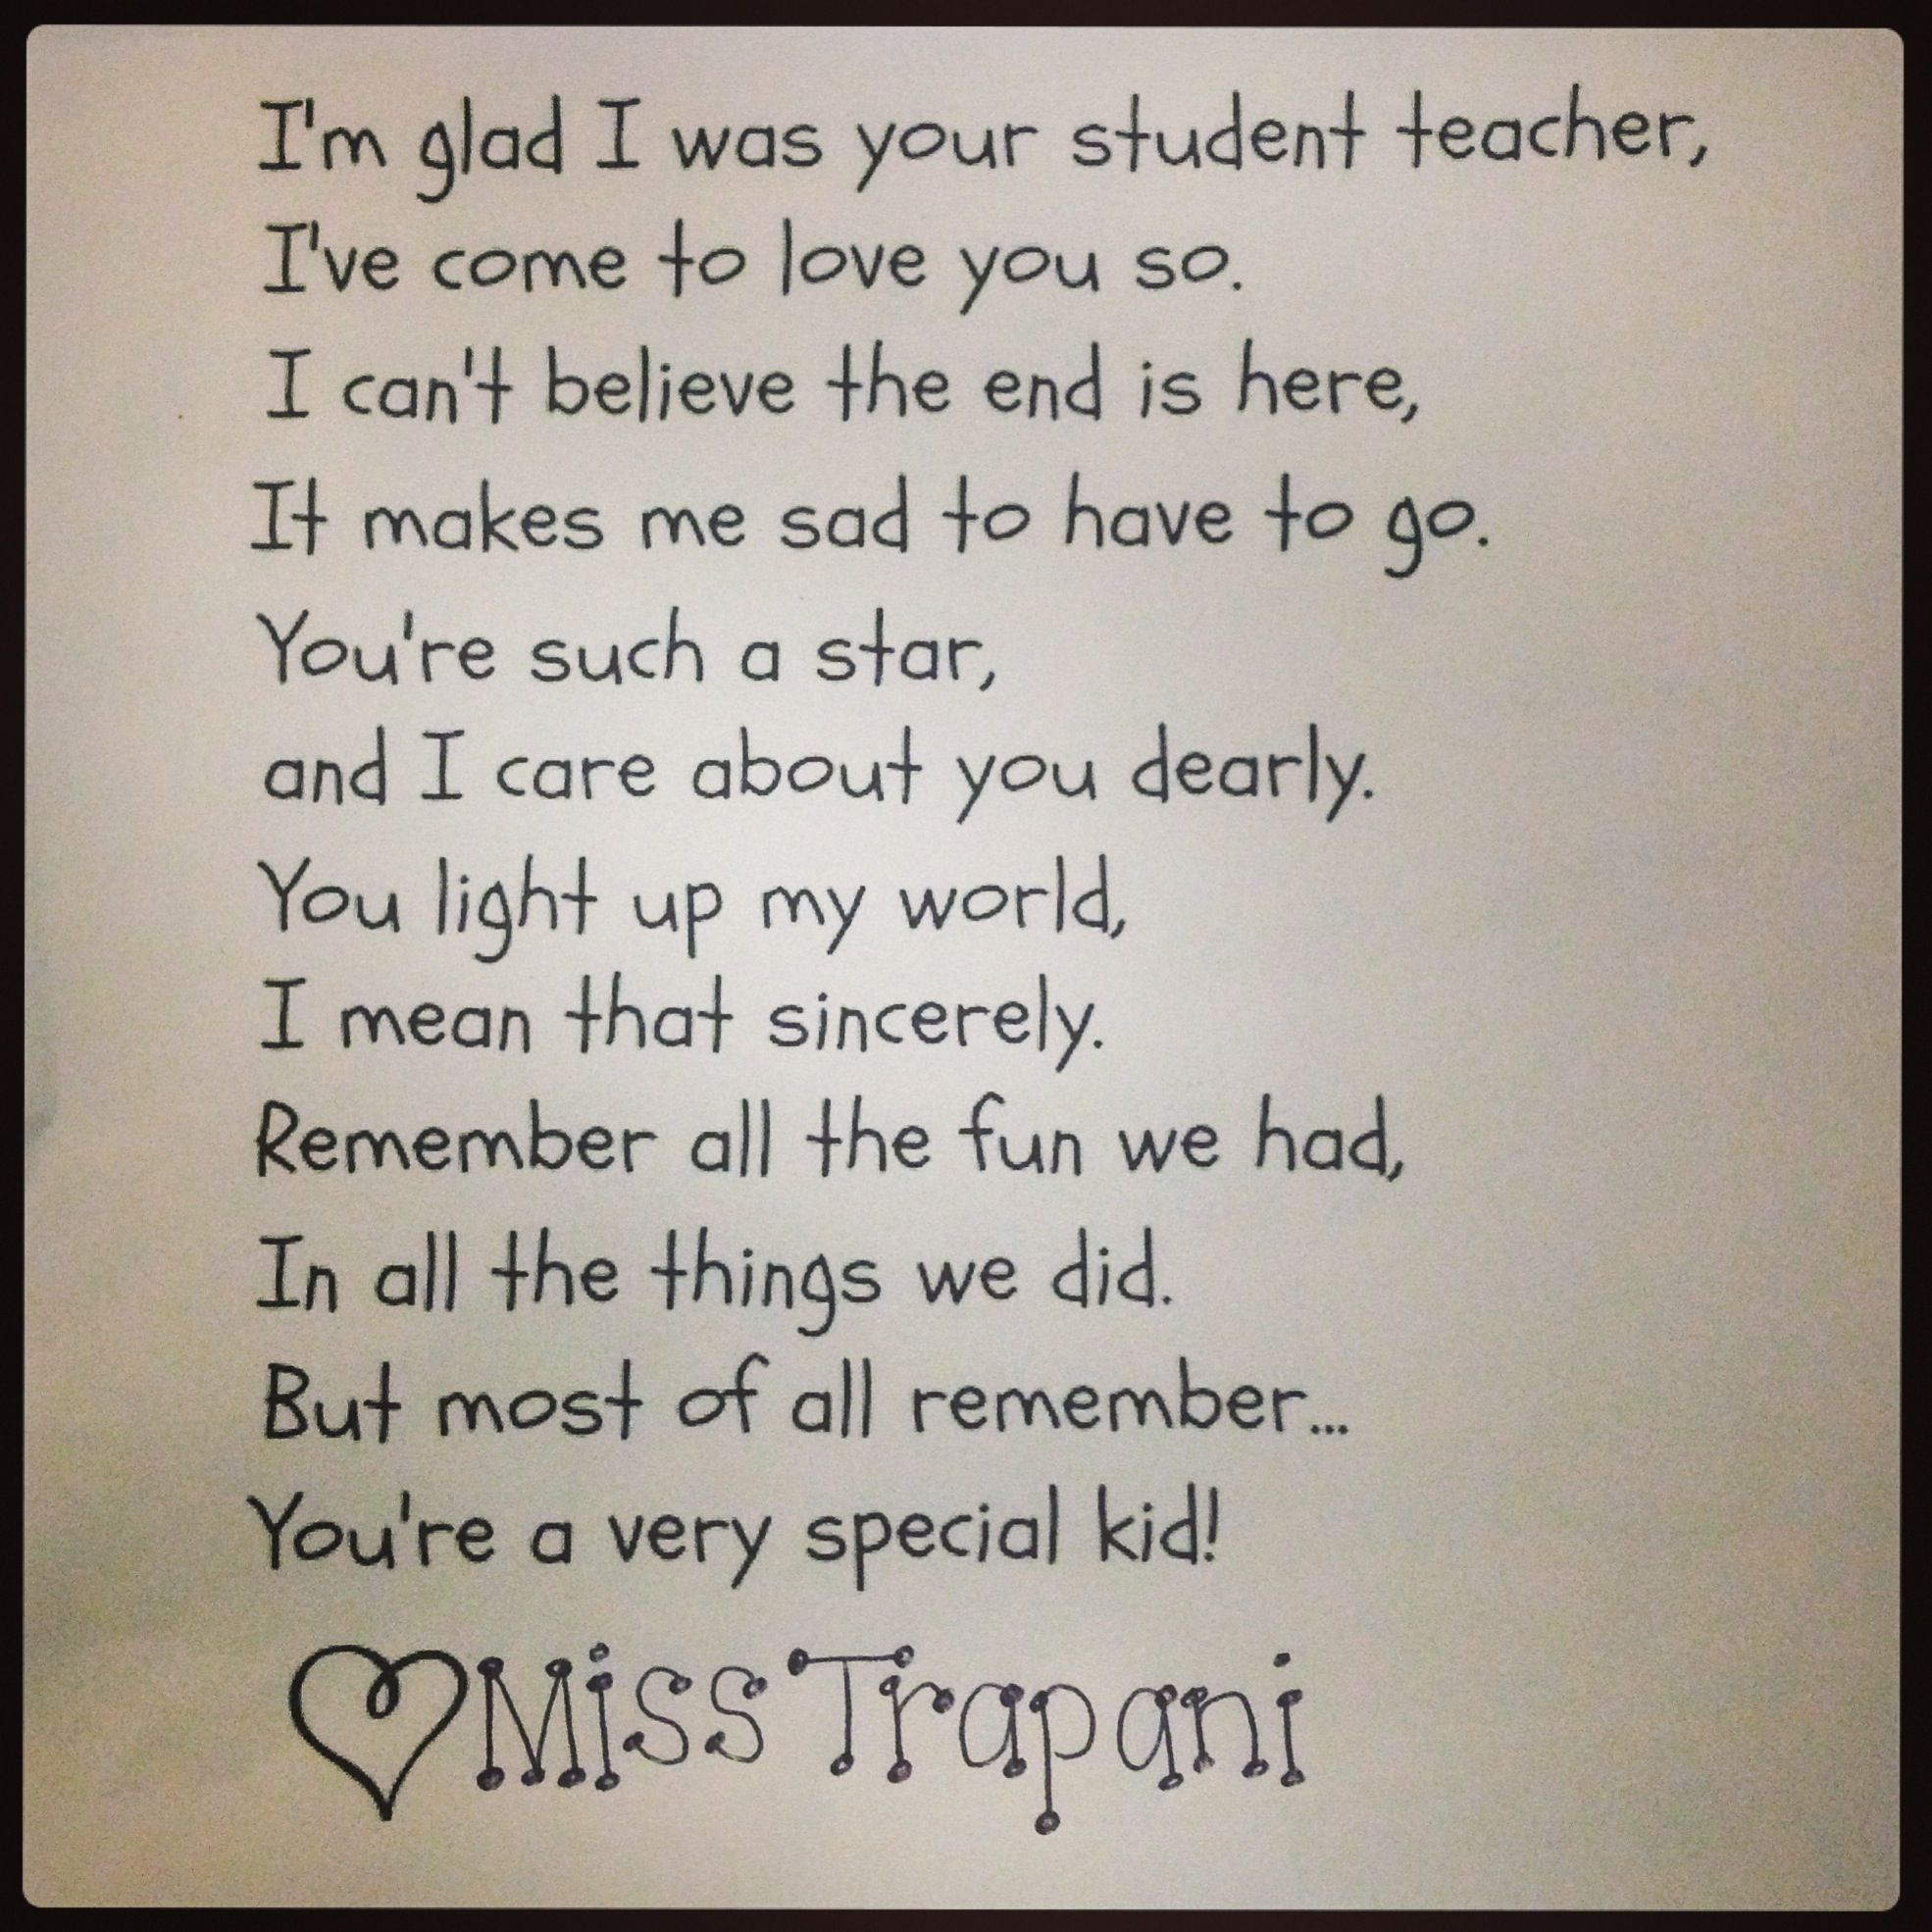 A Cute Poem To Give To Your Students As A Student Teacher